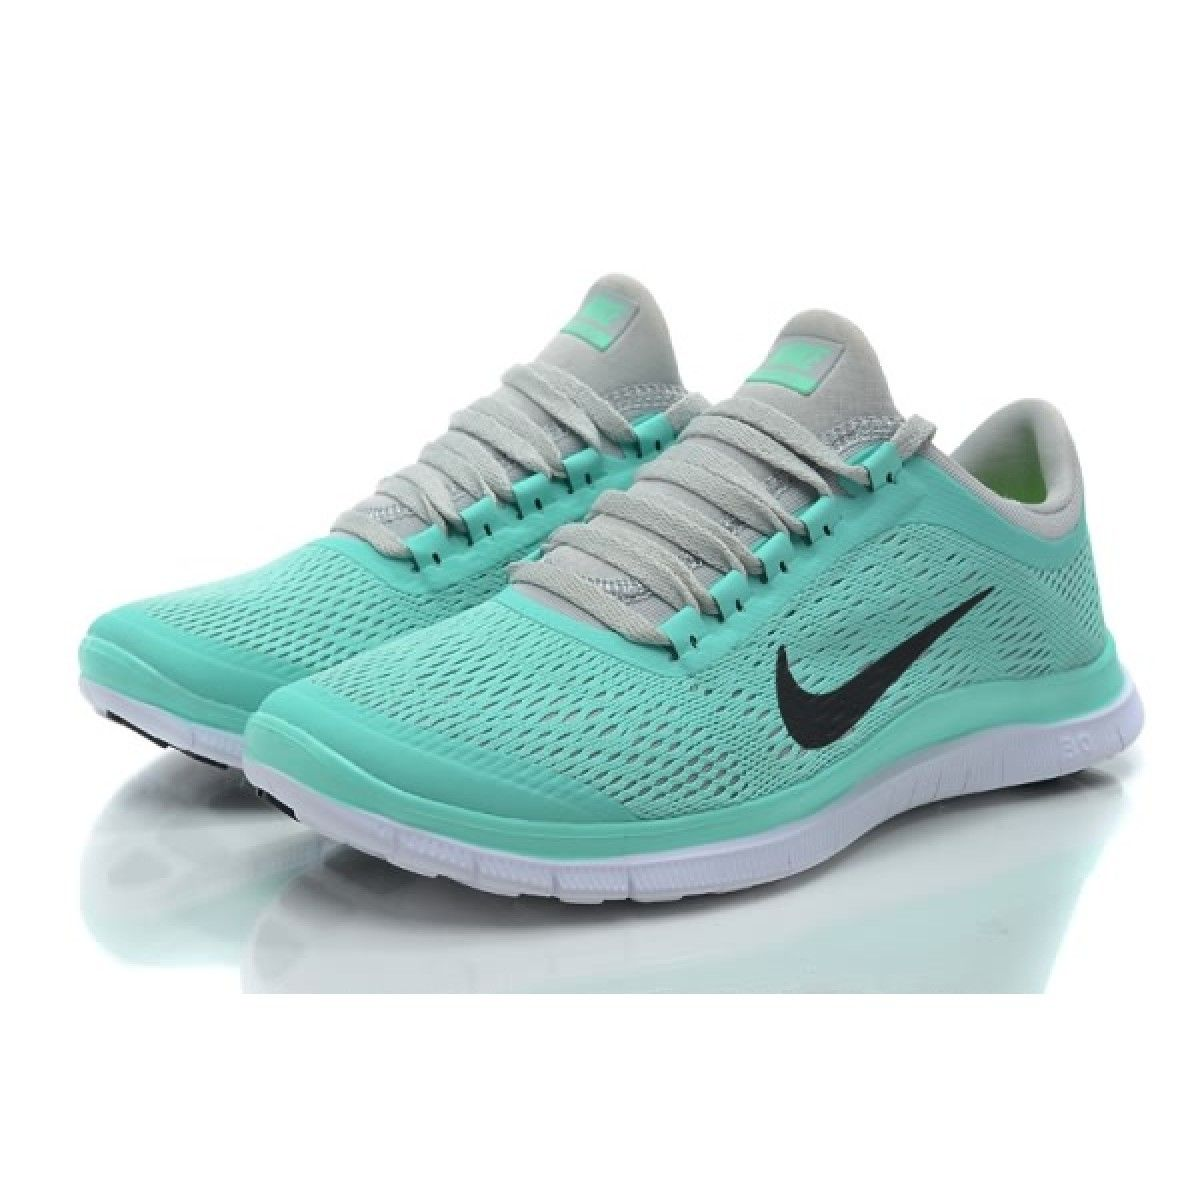 competitive price 3d3a1 2dbd0 ... Nike Free 3.0 V5 Womens Nike Free 3.0 V5 Womens Running shoes Crystal  Mint for ...